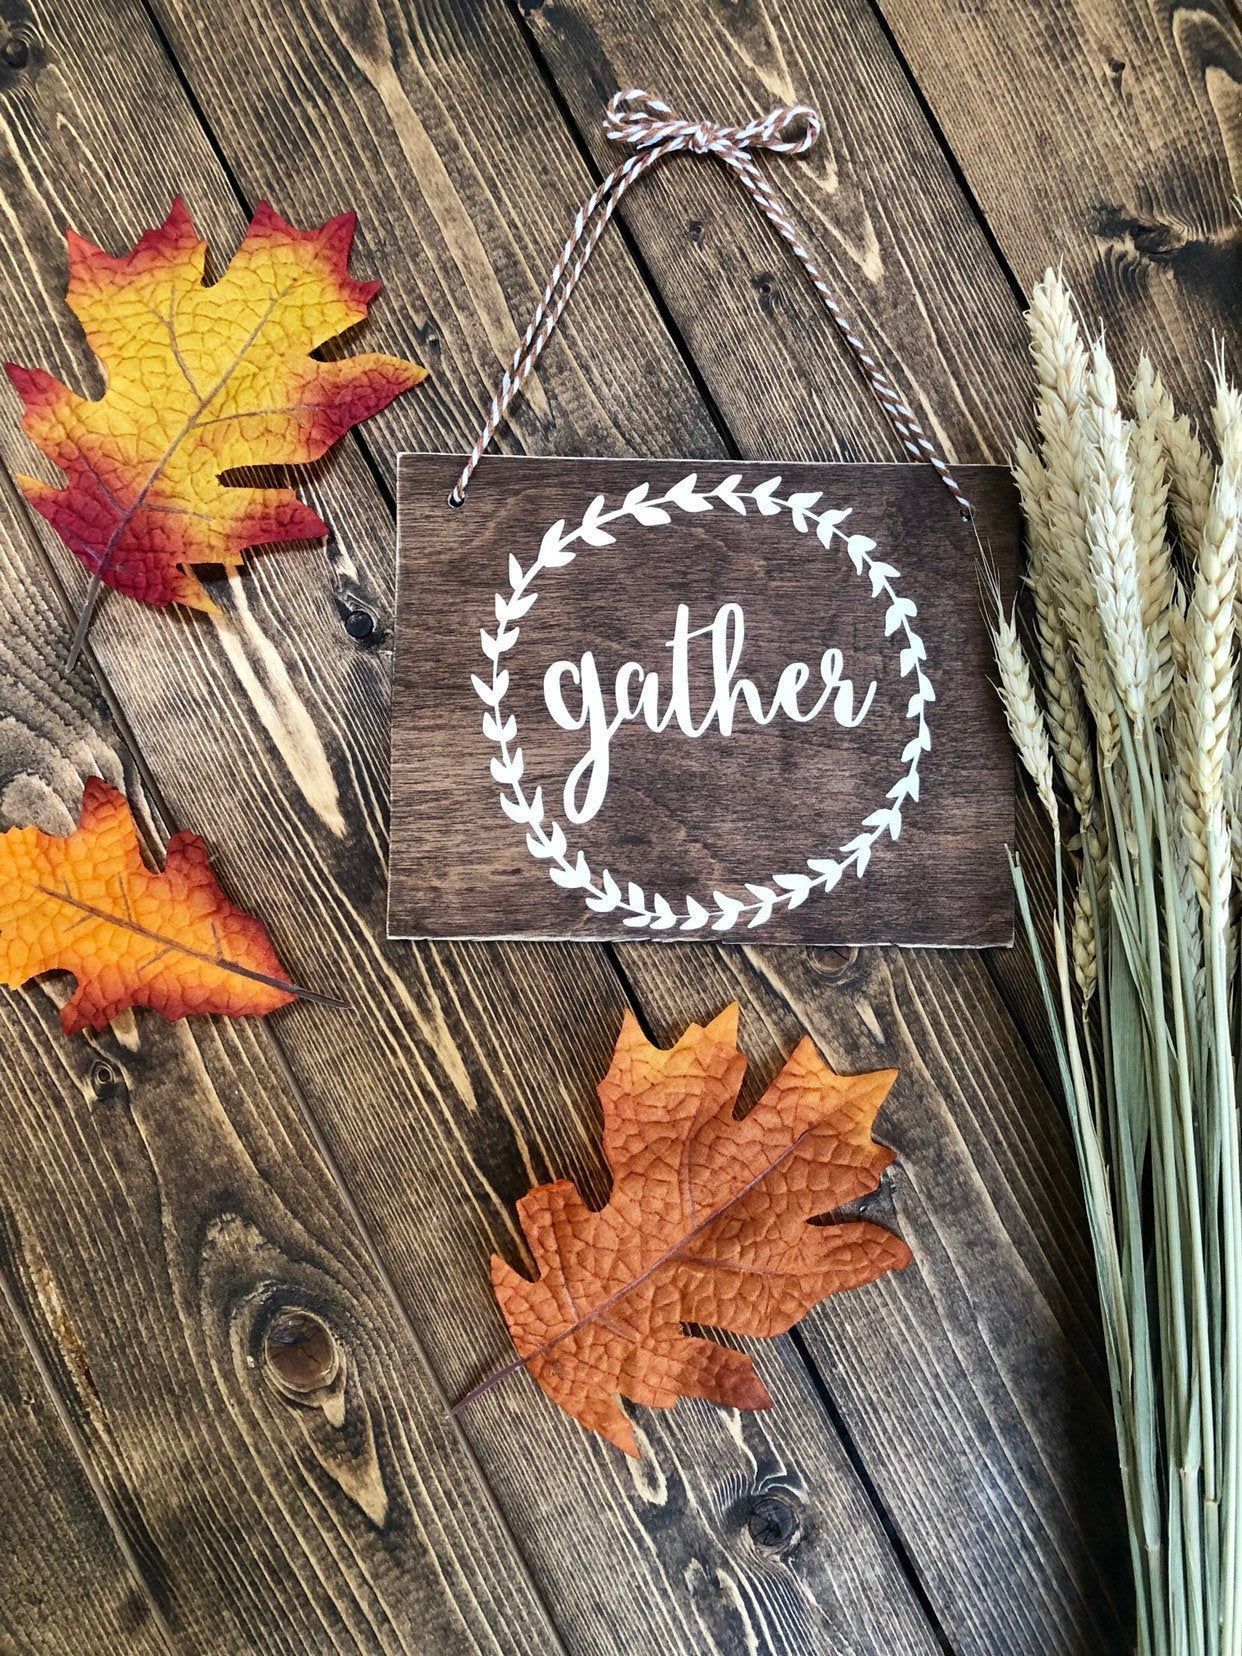 Rustic Gather sign, Wood sign, Fall decor, Fall door sign, Gather decor, Rustic Farmhouse, Thanksgiving decor, Classroom decor #falldoordecorationsclassroom Rustic Gather sign, Wood sign, Fall decor, Fall door sign, Gather decor, Rustic Farmhouse, Thanksgiving decor, Classroom decor #falldoordecorationsclassroom